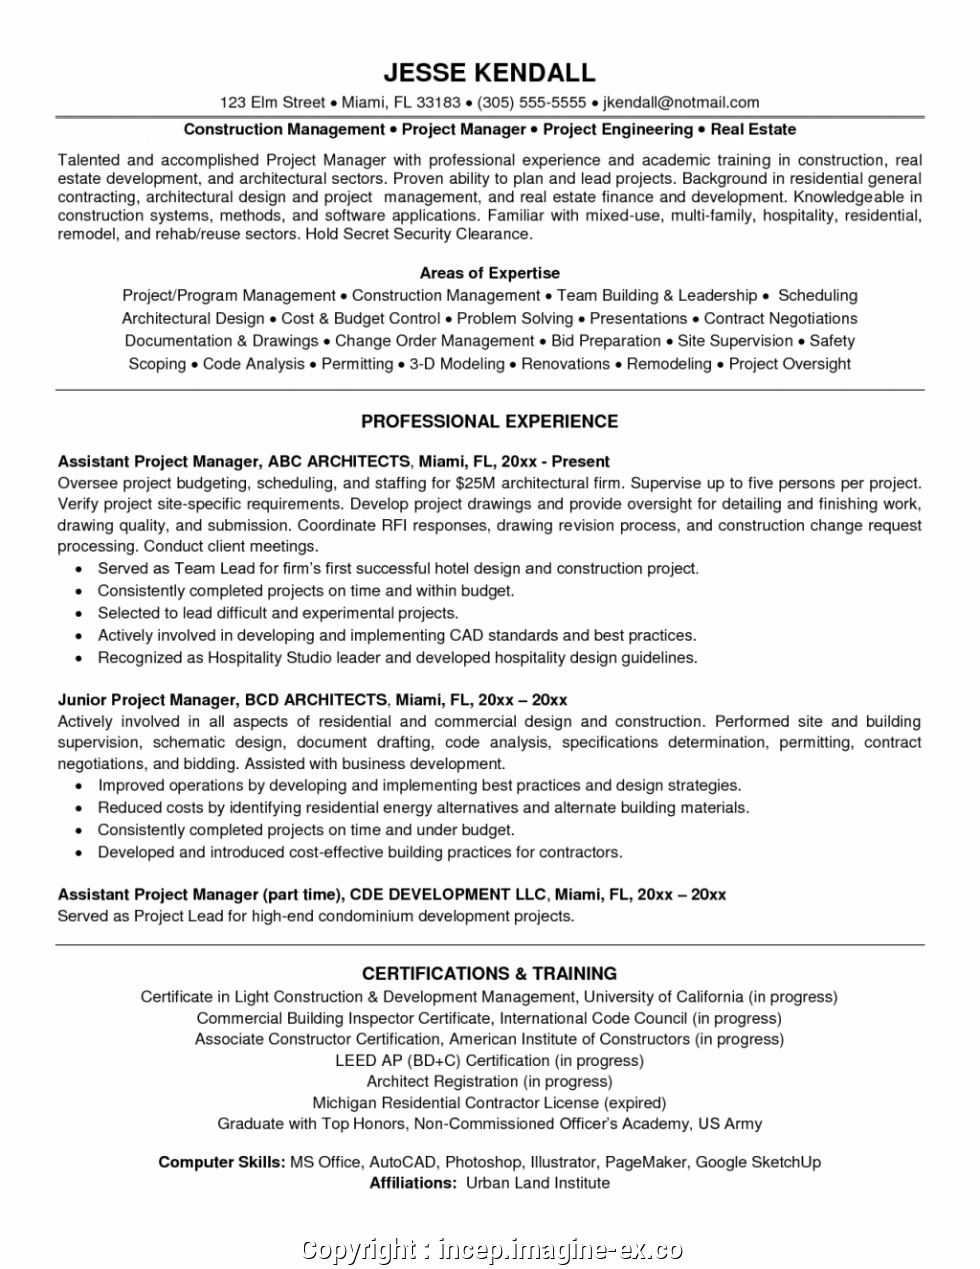 Real Estate Office Manager Resume - Mercial Property Manager Resume Samples Building Manager Resume